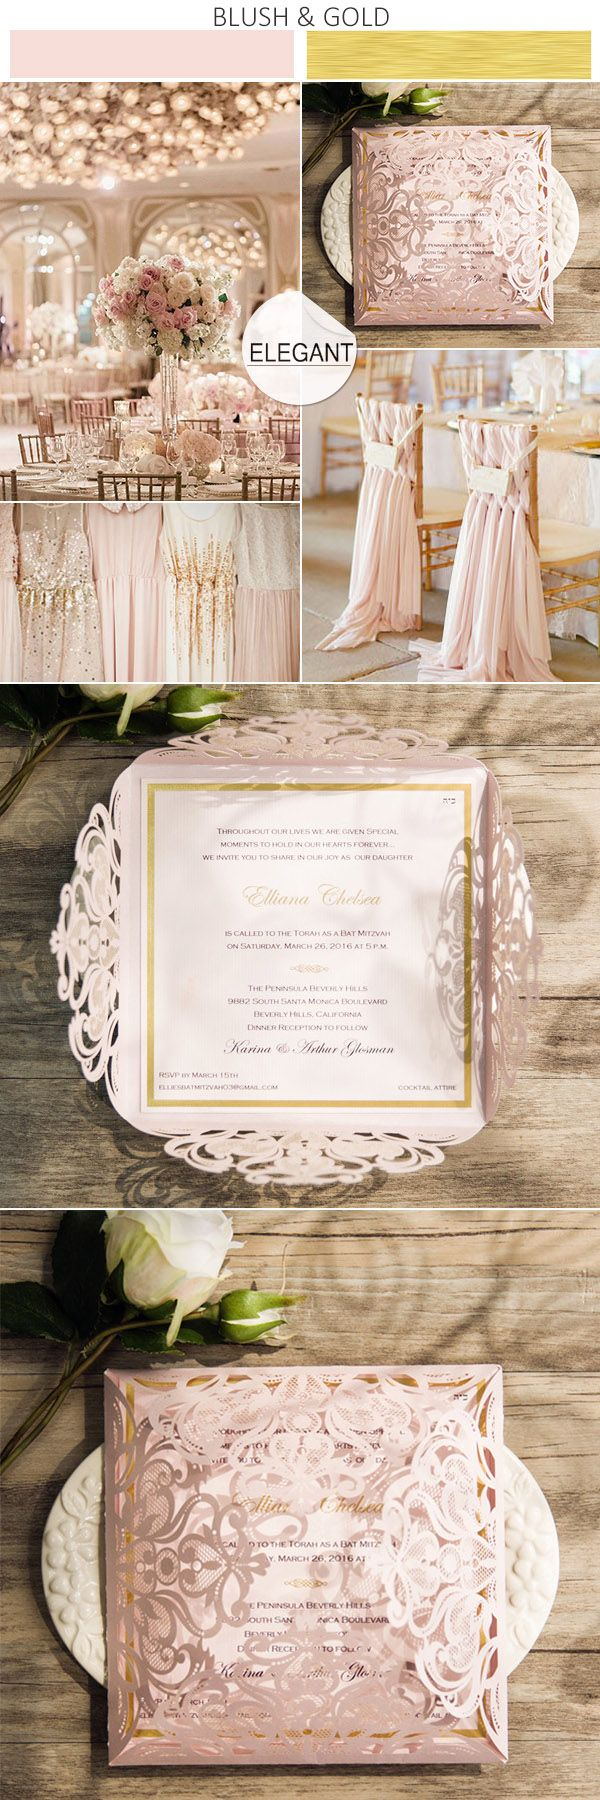 blush wedding invitations blush wedding invitations blush pink and gold wedding colors inspired laser cut wedding invitations